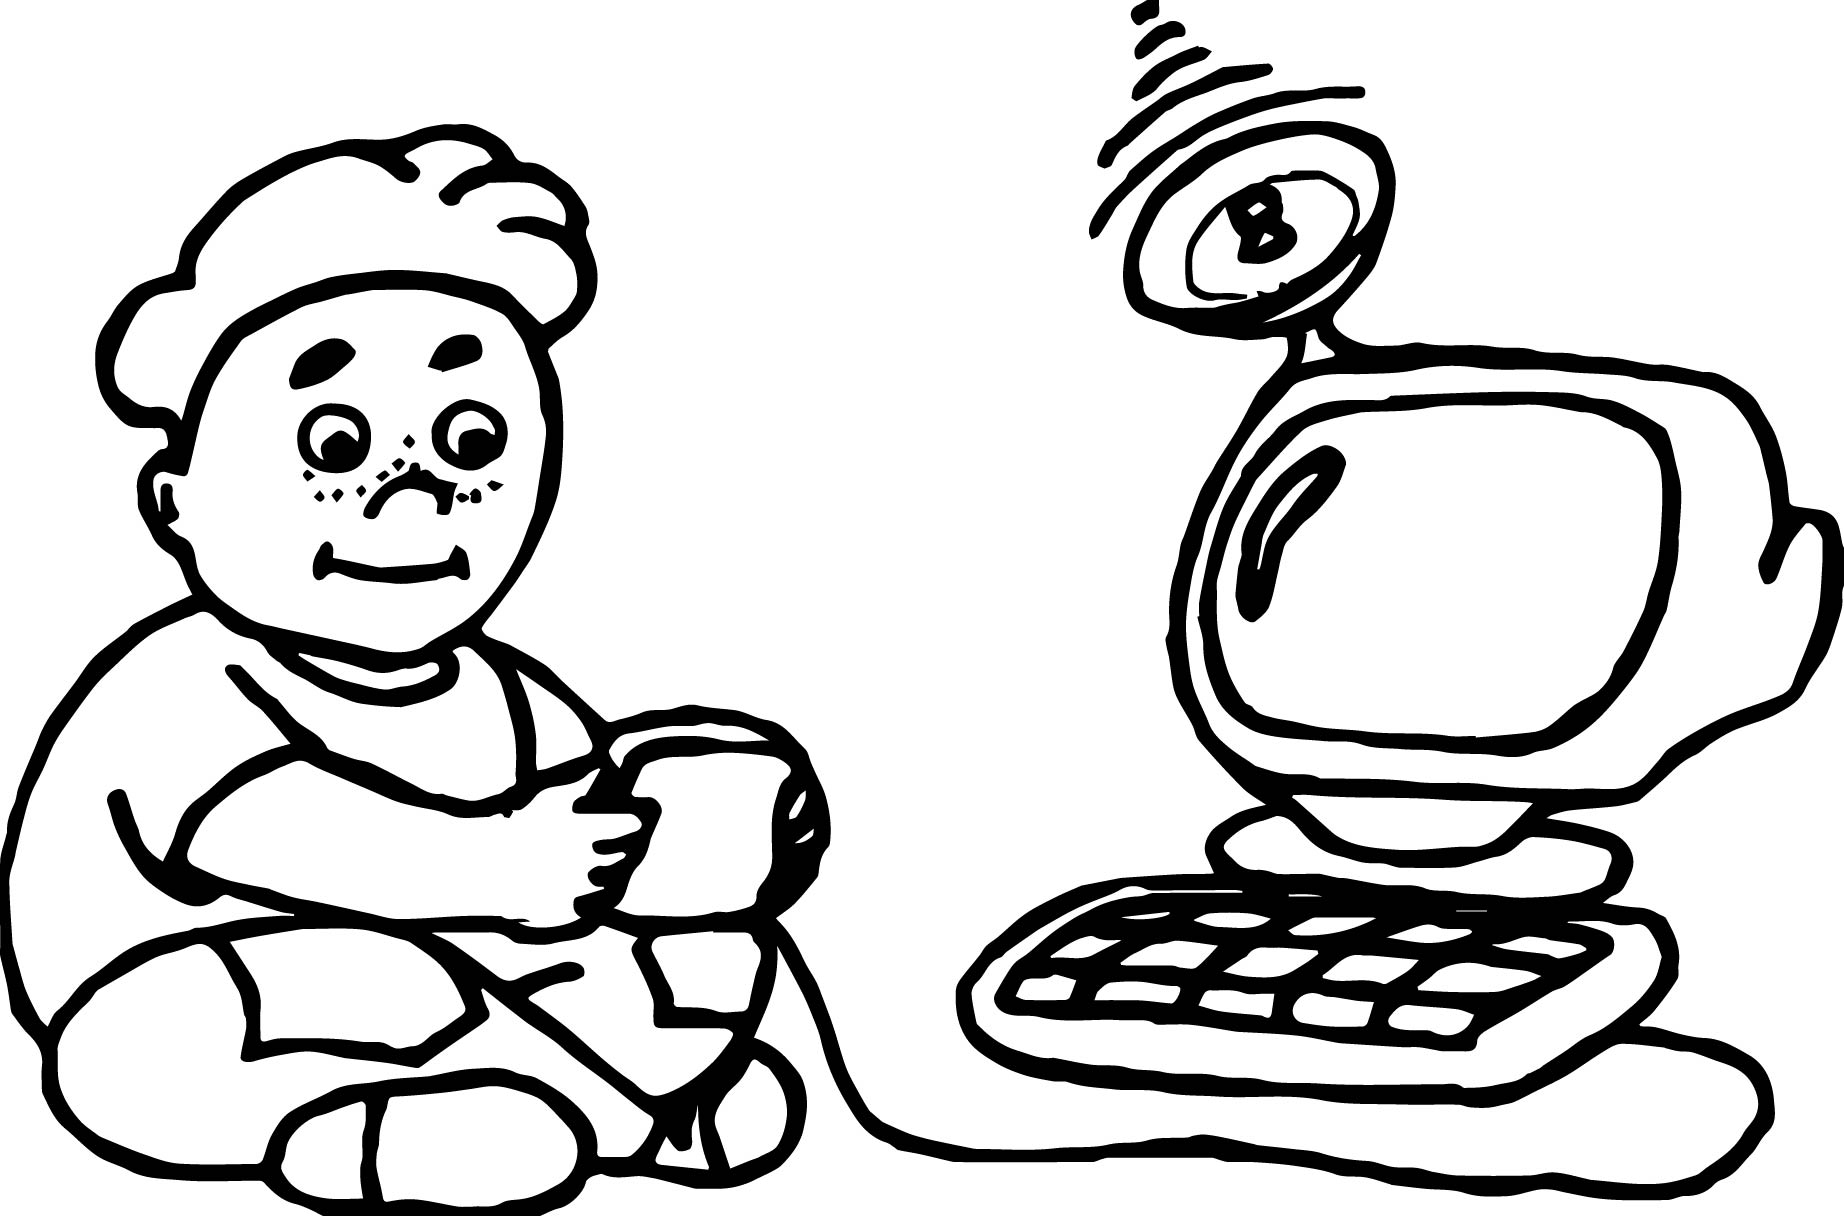 Gamer Playing Computer Games Coloring Page